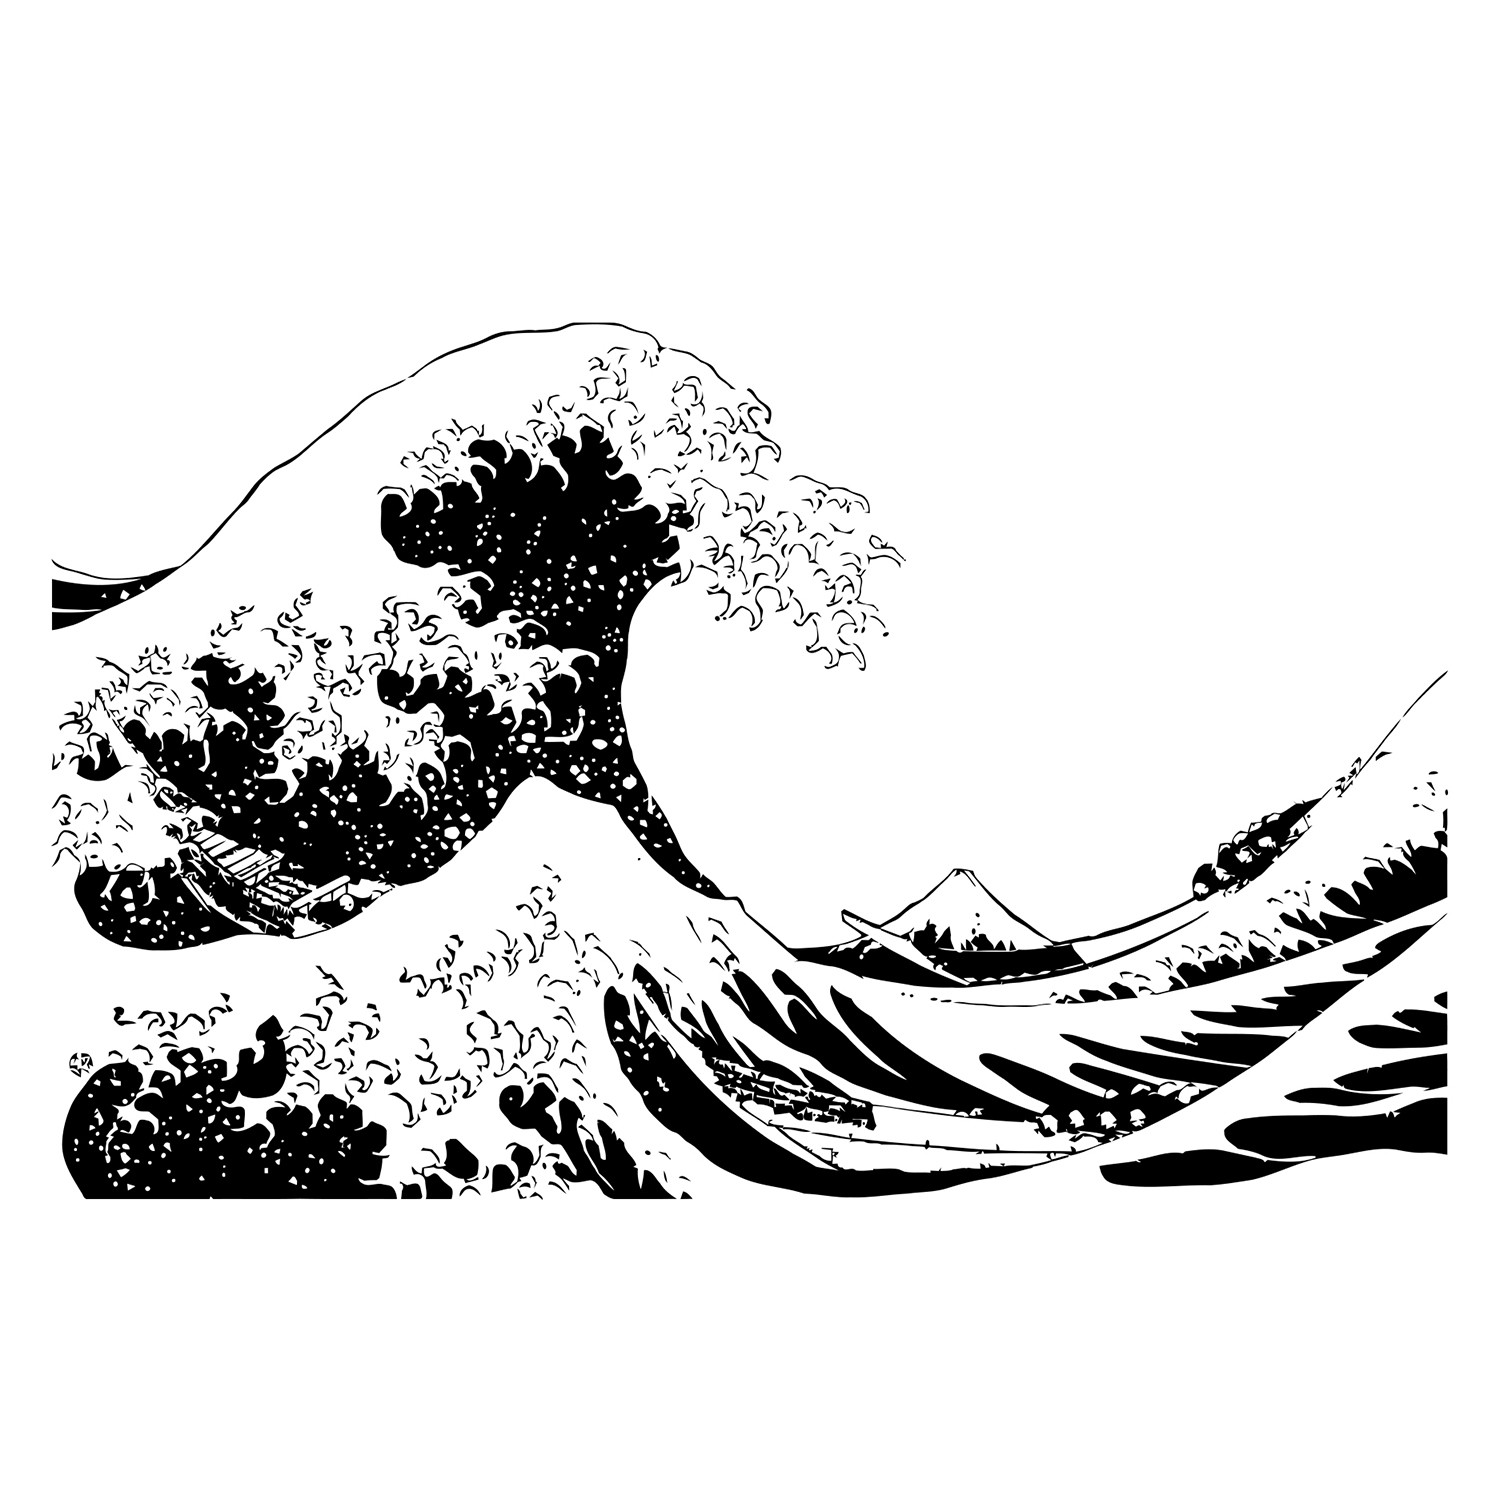 Japanese Great Hokusai Wave 104 Quot W X 65 Quot H Stickerbrand